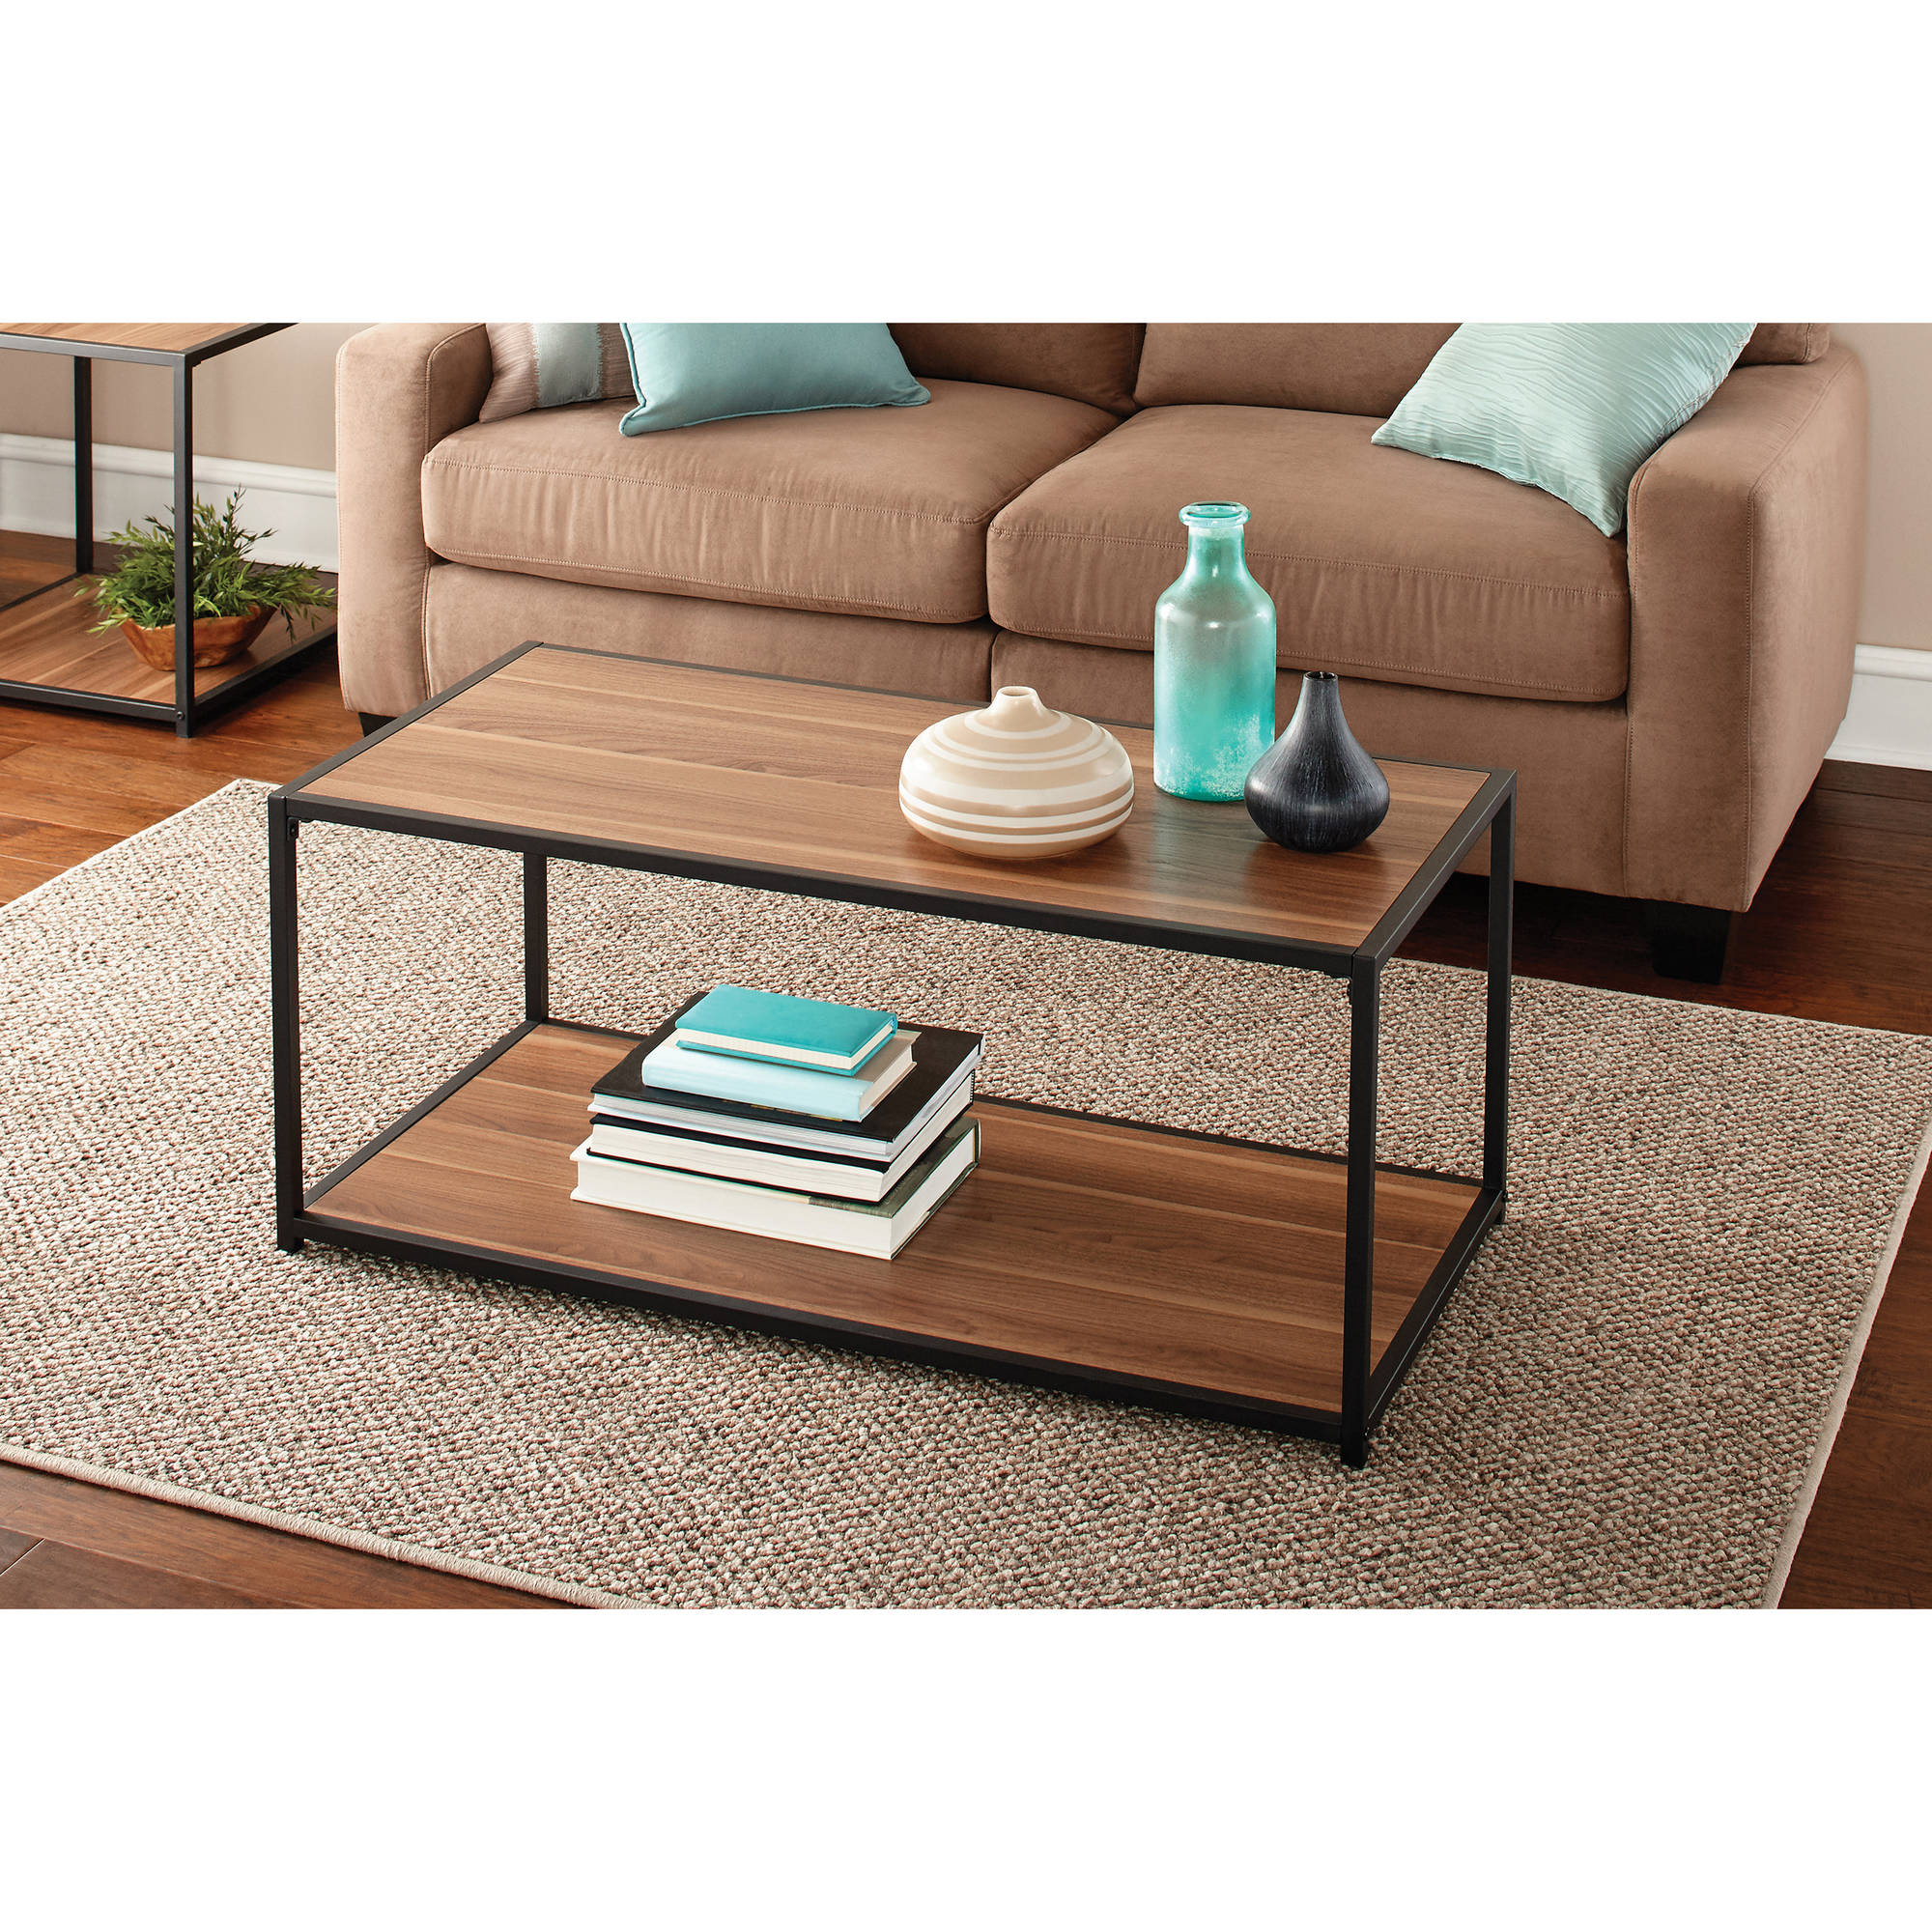 Mainstays Lift-Top Coffee Table, Multiple Colors - Walmart.com